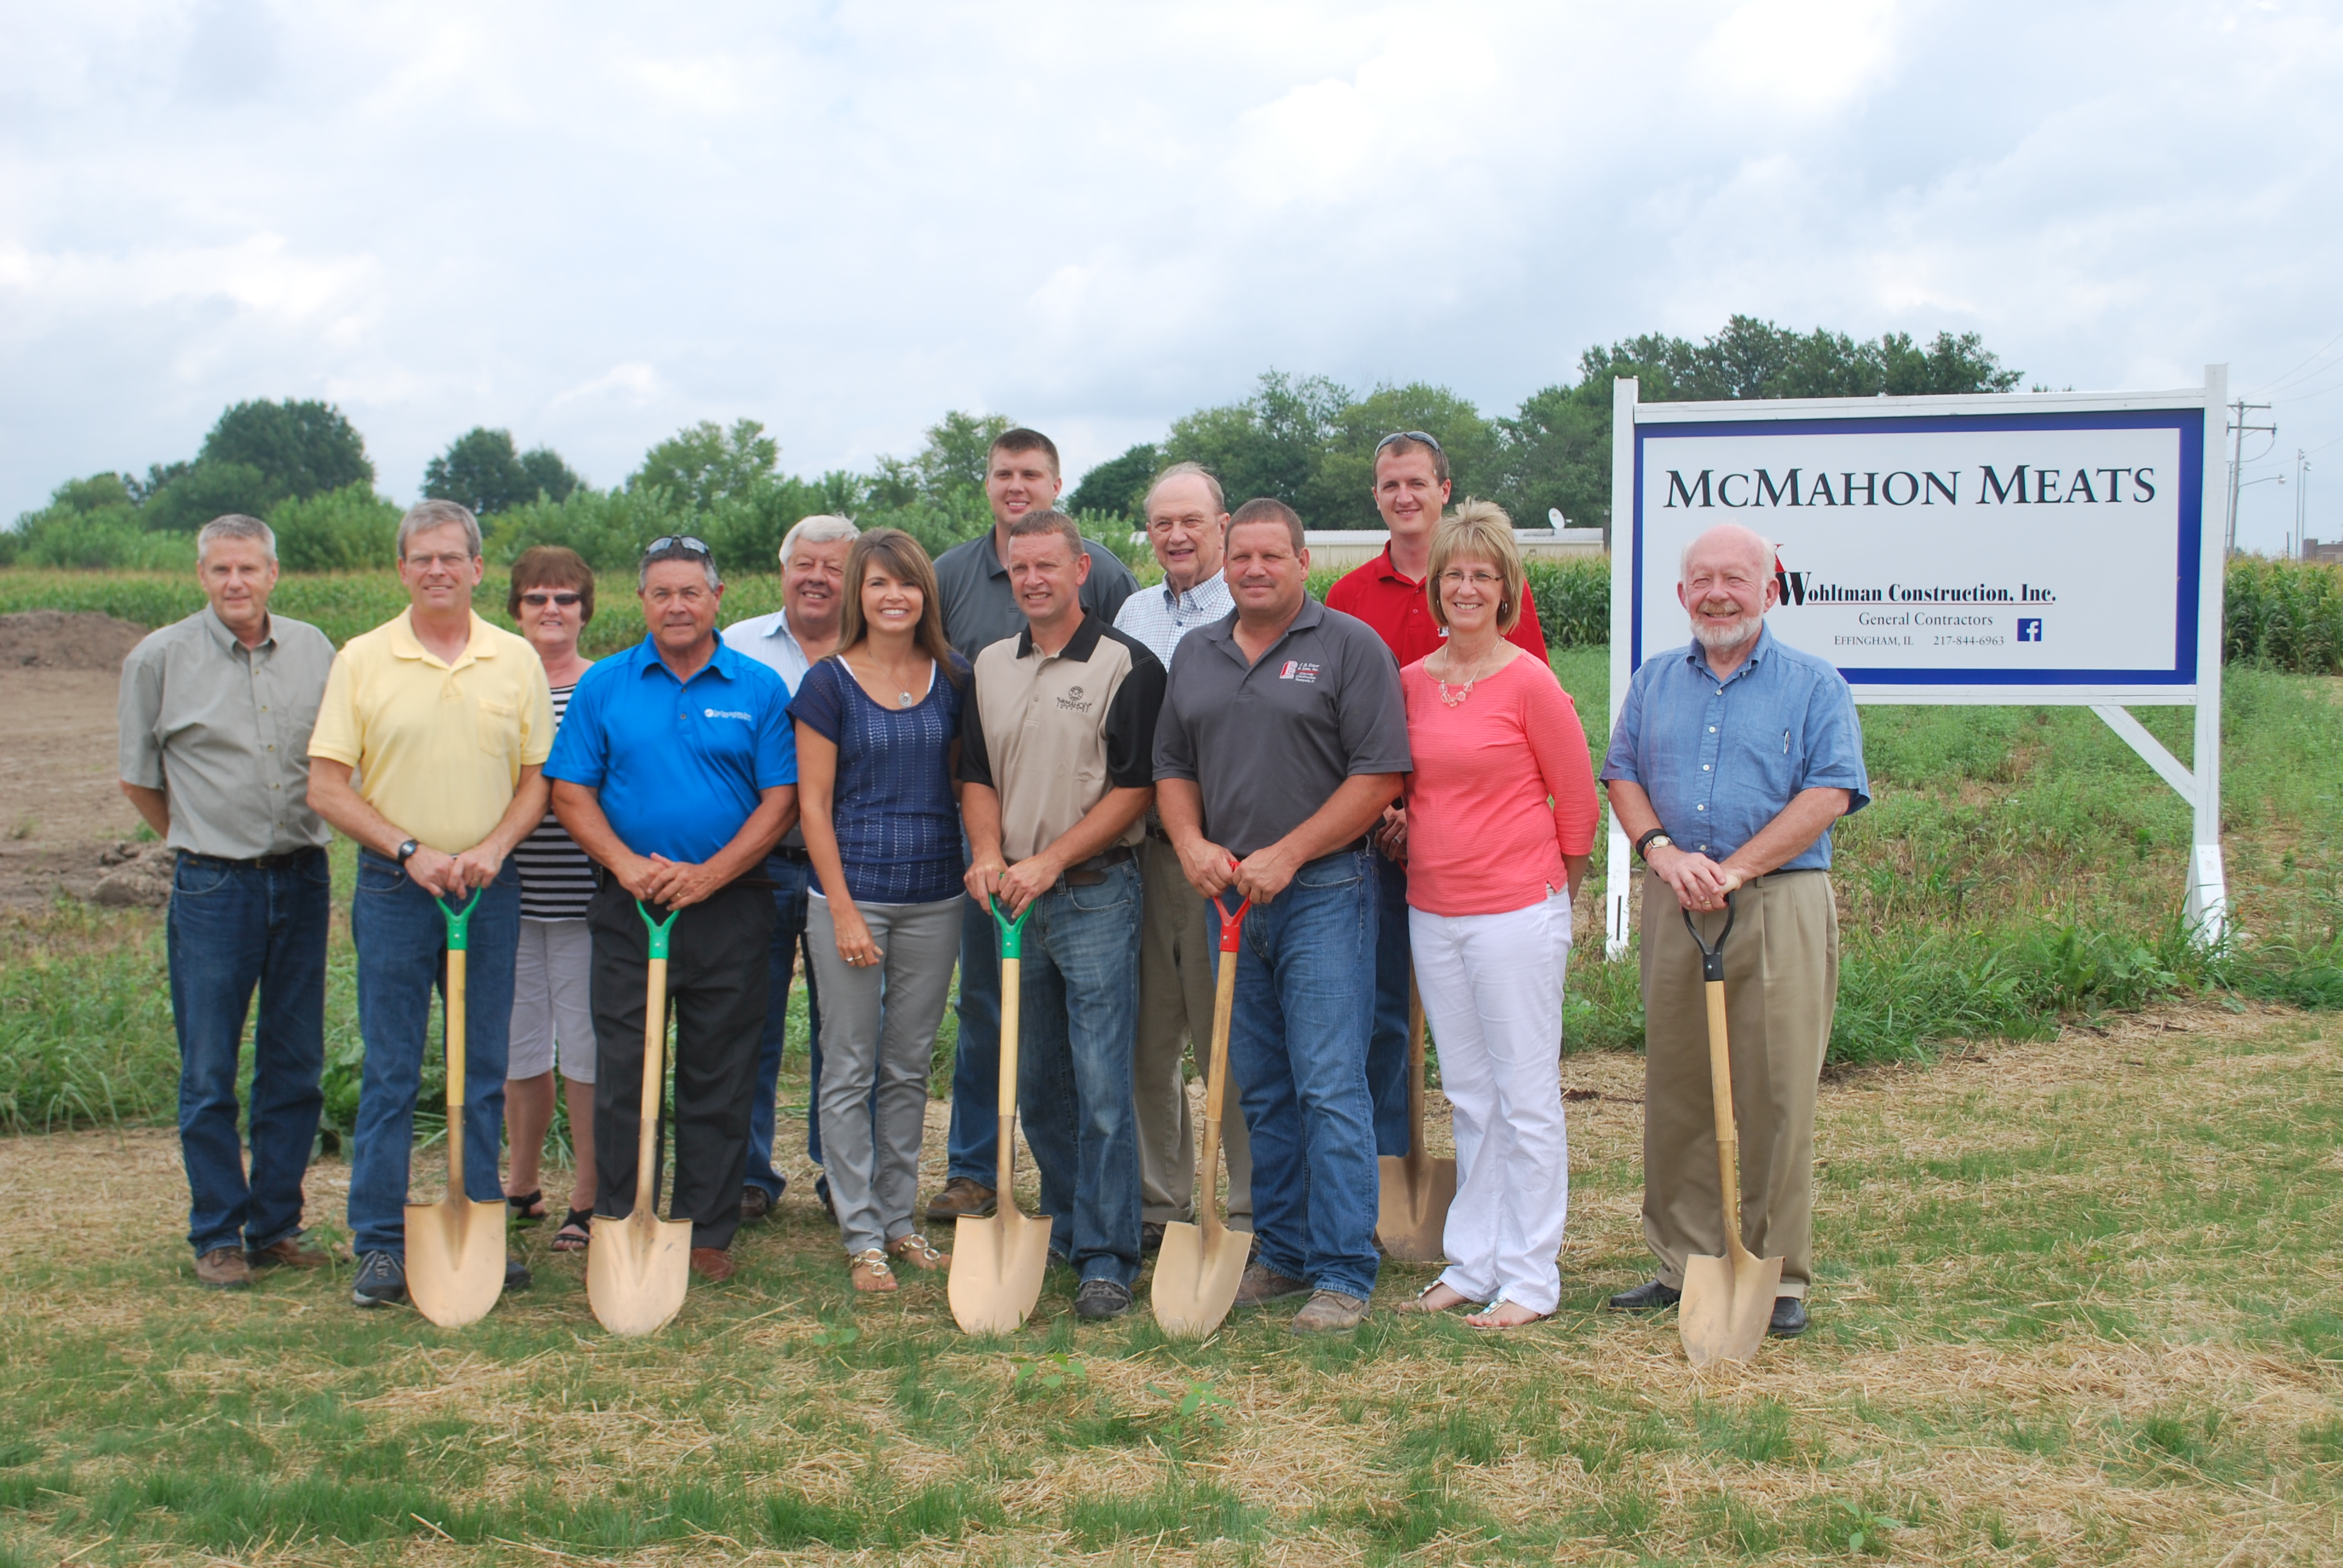 Illinois effingham county teutopolis - On Monday August 10 2015 A Groundbreaking Ceremony Was Conducted At The Future Site Of Mcmahon Meats In Teutopolis The New Business Will Be Owned And